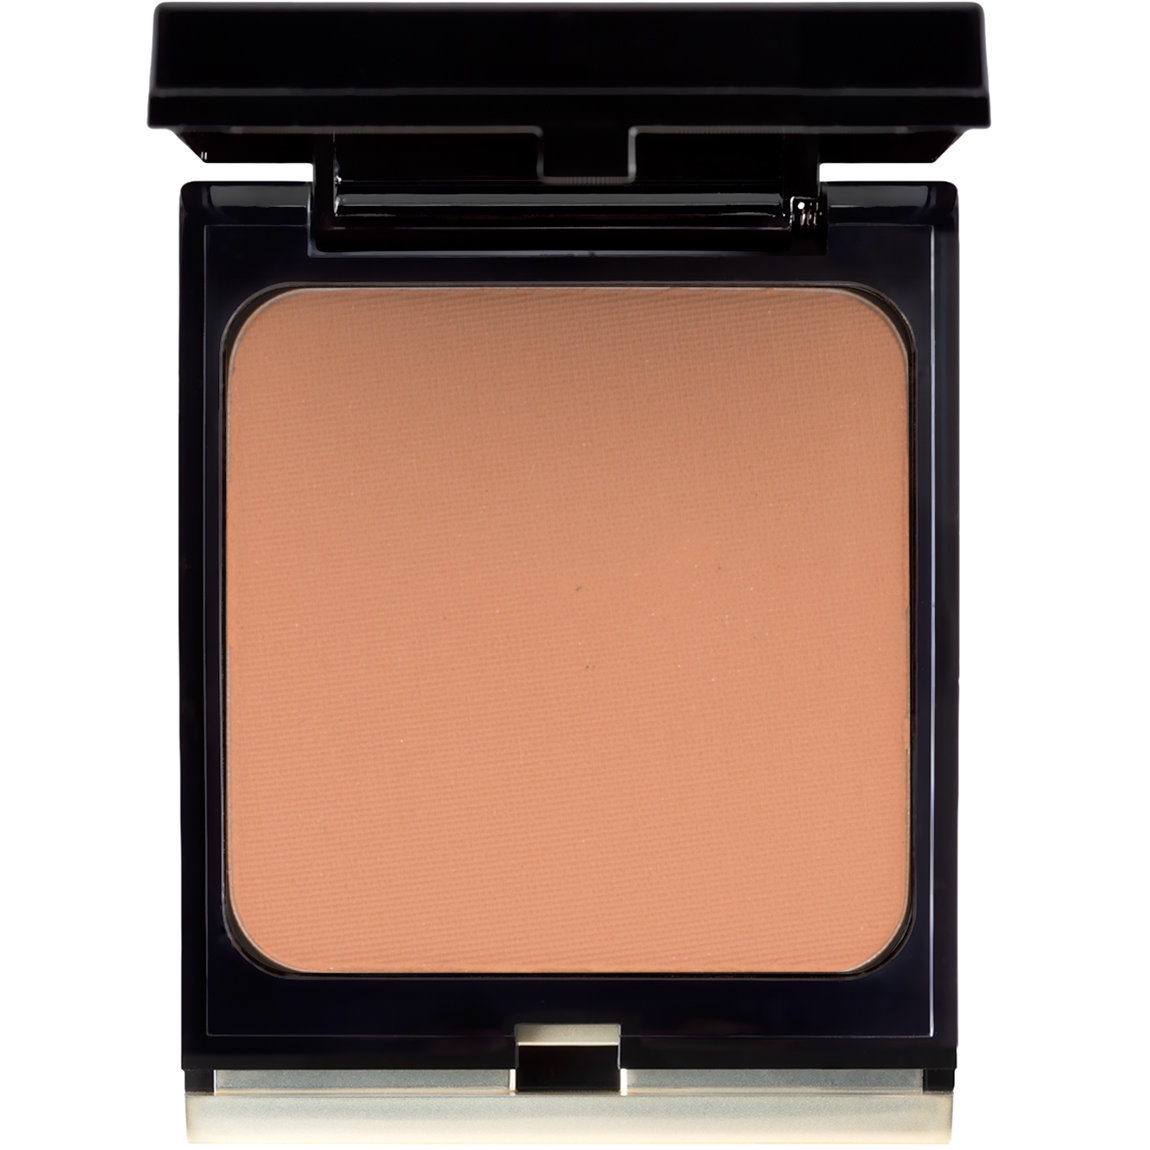 Kevyn Aucoin The Sensual Skin Powder Foundation PF07 alternative view 1 - product swatch.